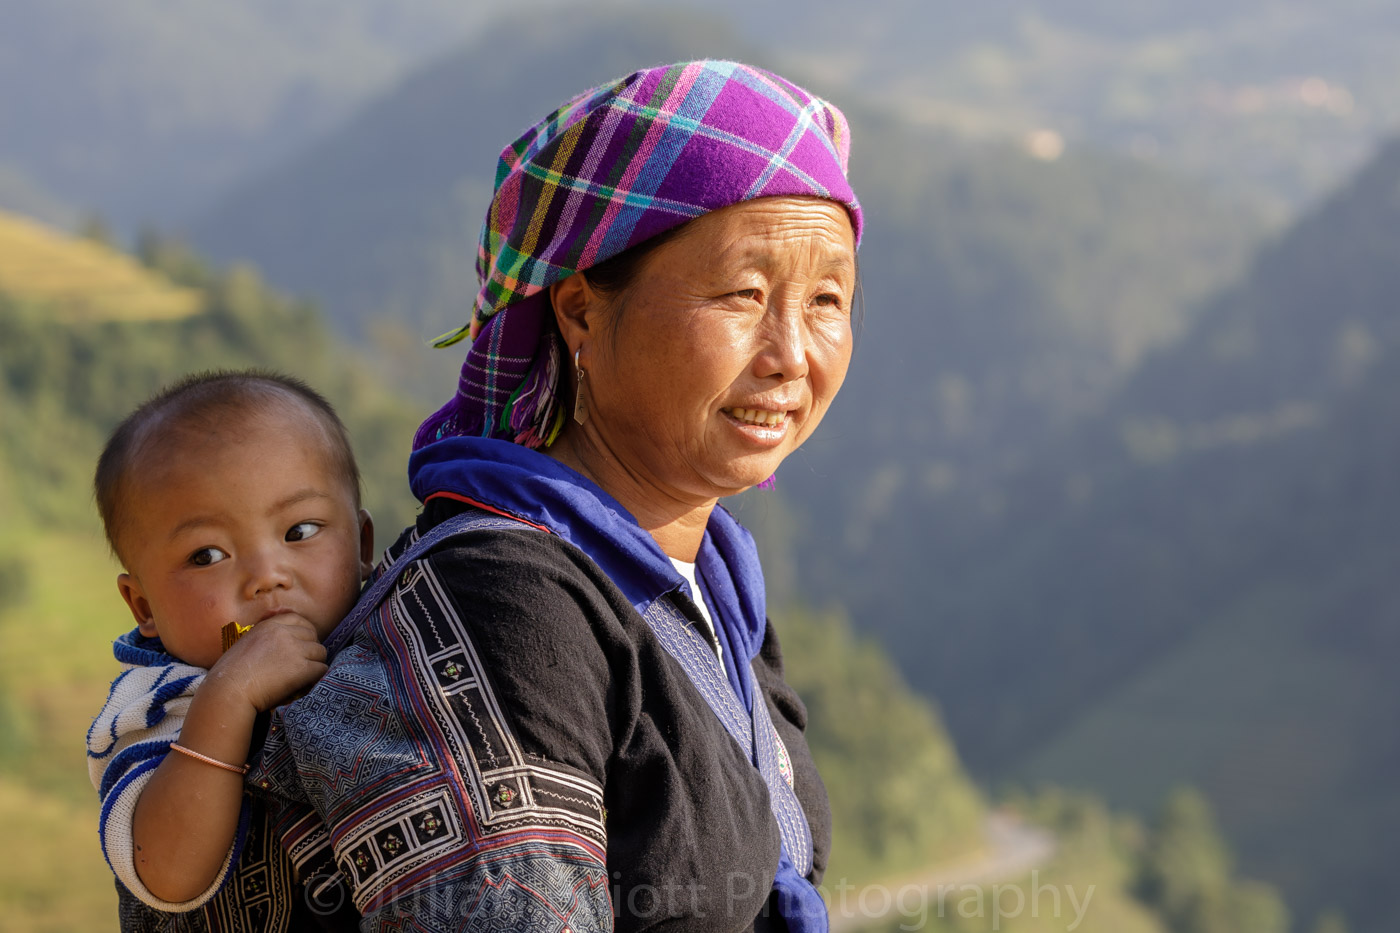 A woman from the Hmong tribe in Sa Pa, Vietnam.